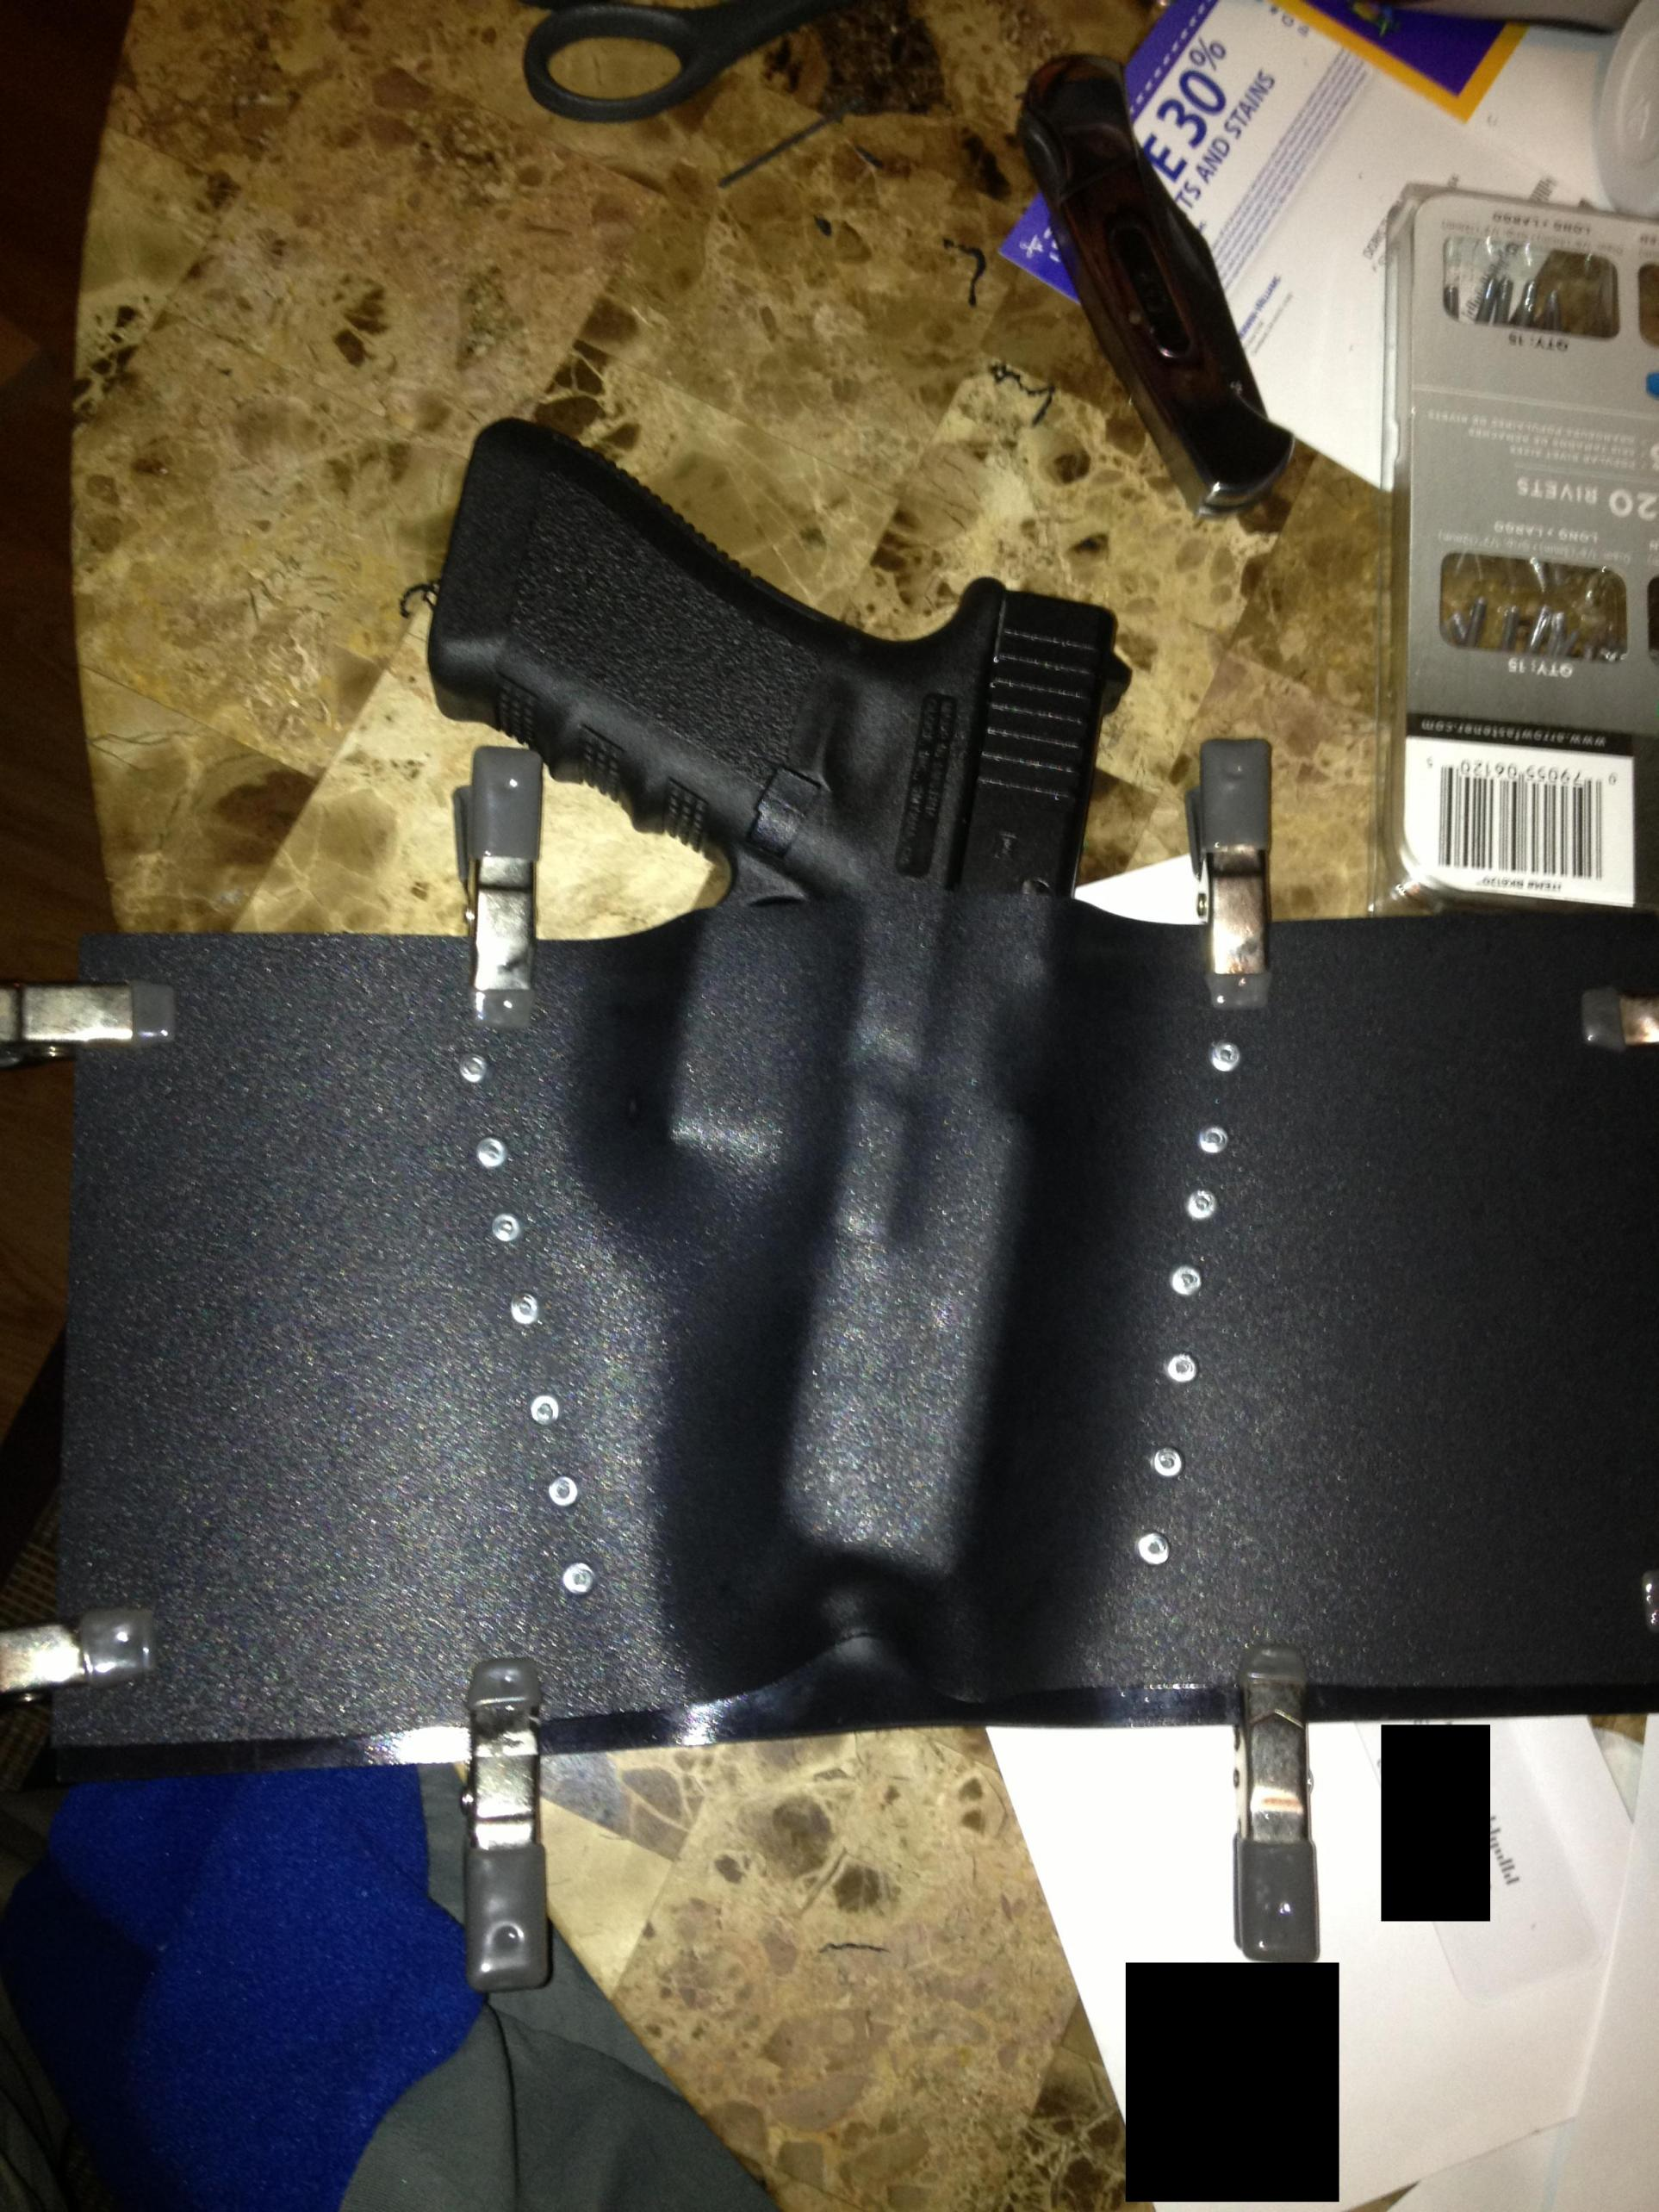 Going to make my own Kydex OWB Holster